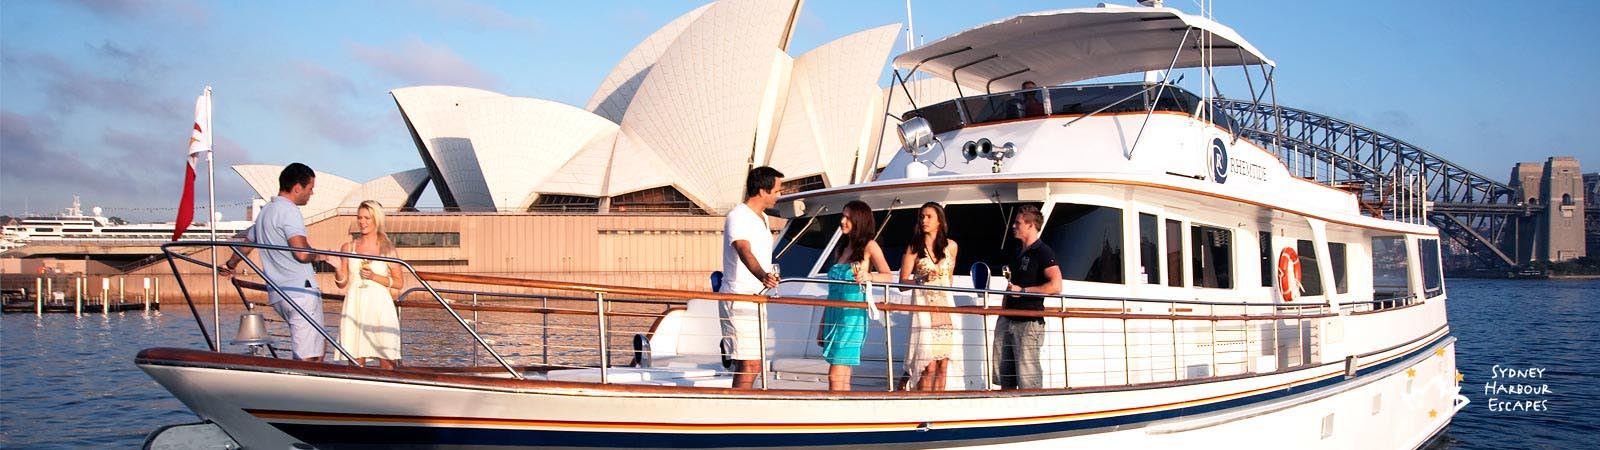 Corporate Event Cruises Sydney Harbour